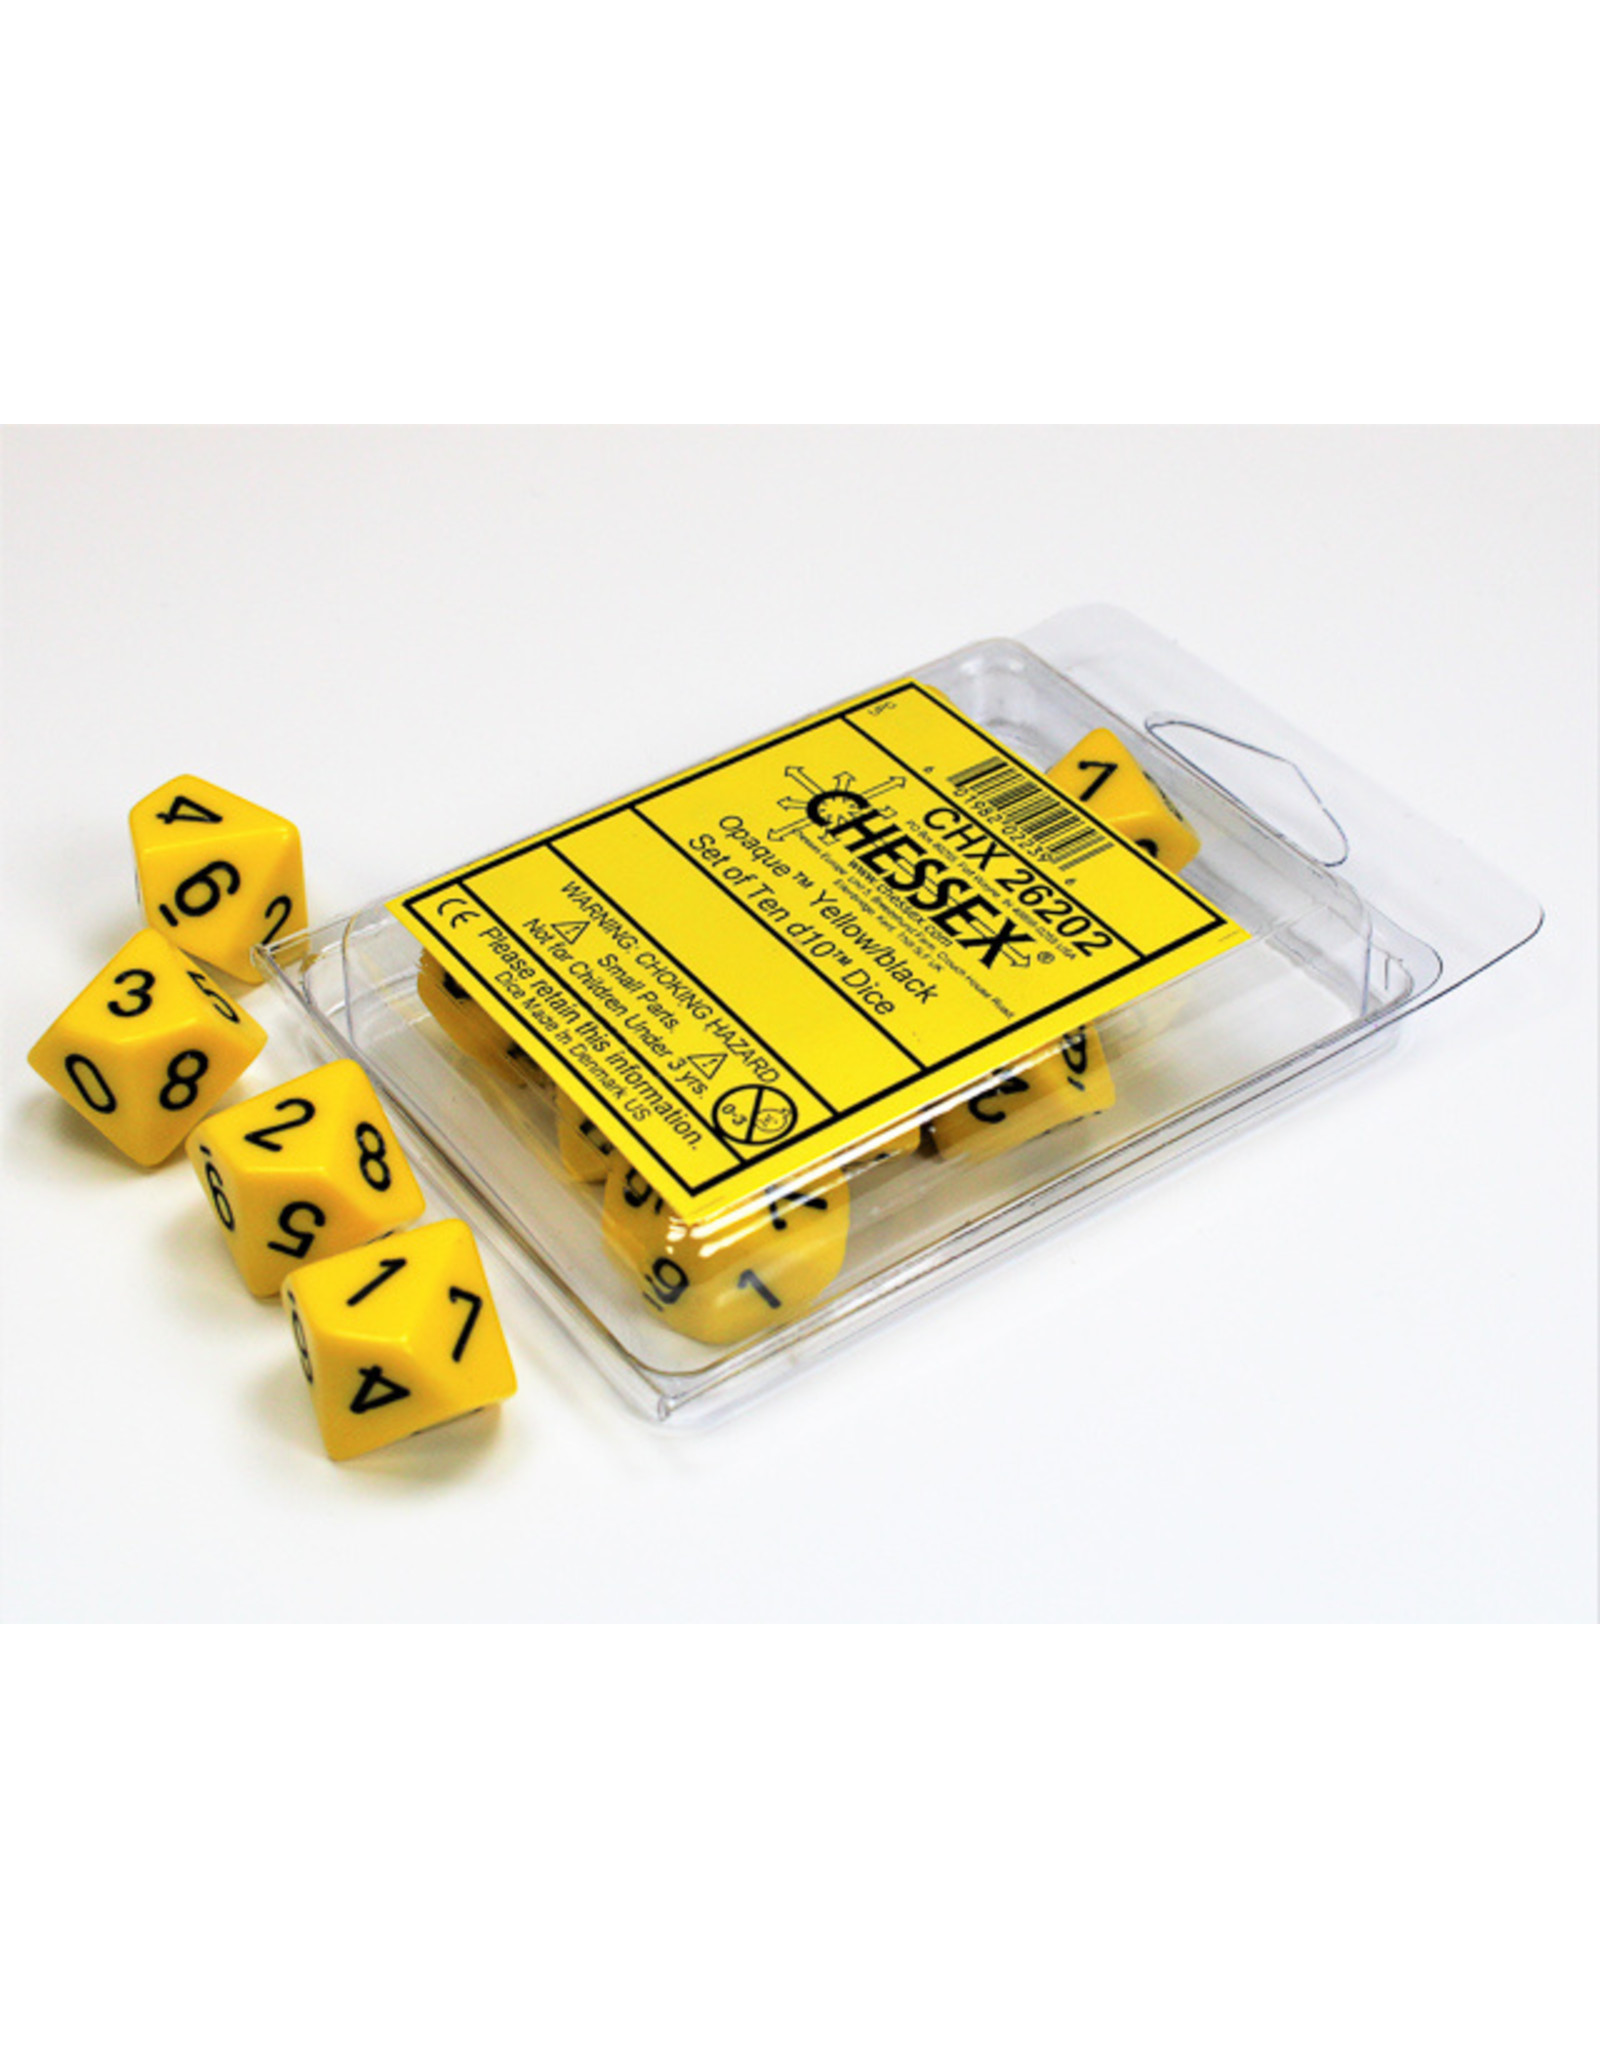 Chessex Chessex D10 Dice Sets